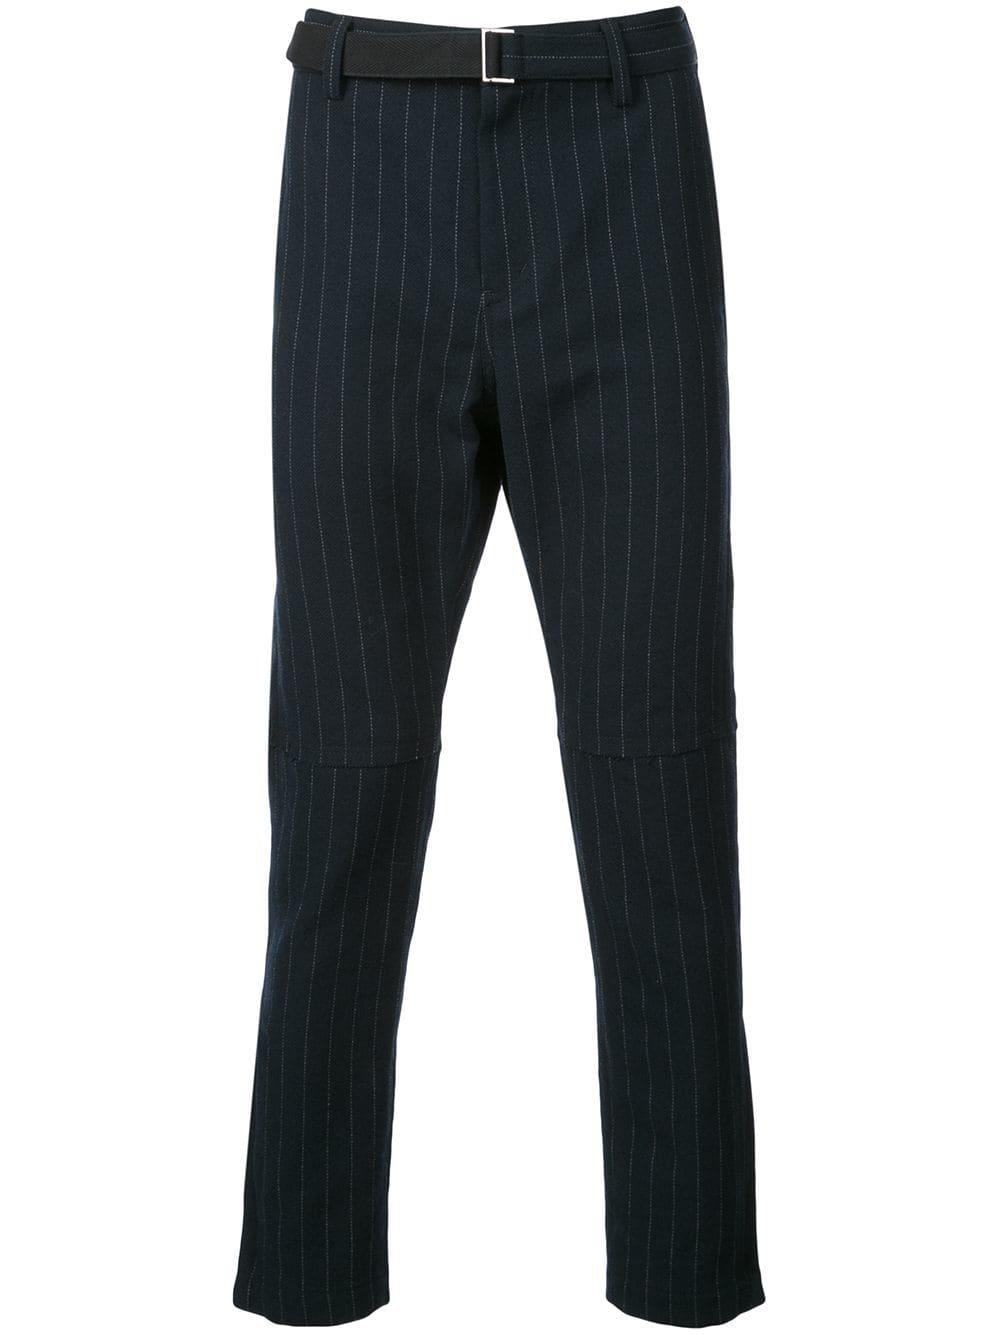 Sacai Belted Pinstripe Trousers - Black